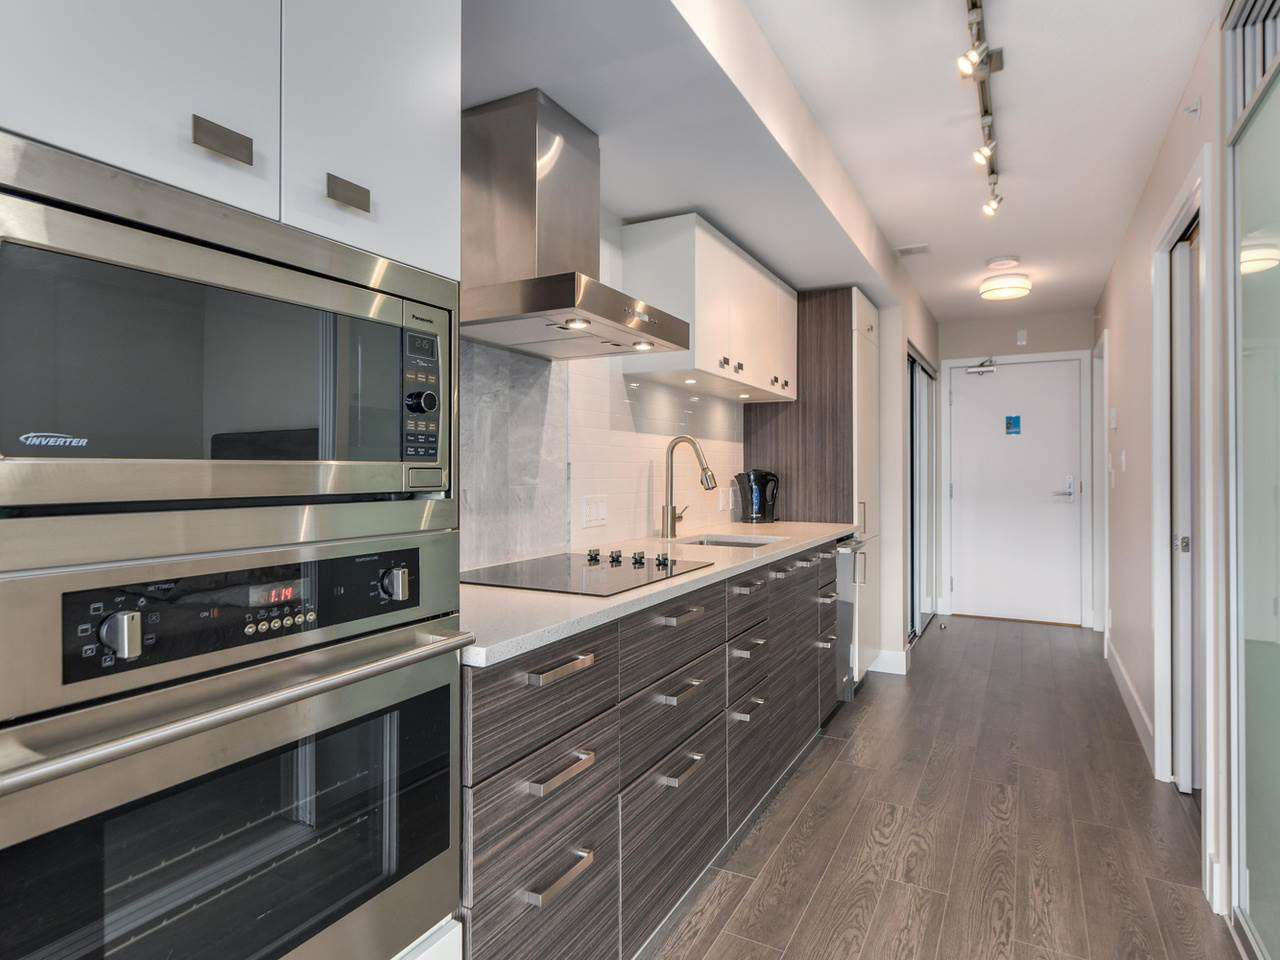 """Main Photo: 508 1783 MANITOBA Street in Vancouver: False Creek Condo for sale in """"THE RESIDENCES AT THE WEST"""" (Vancouver West)  : MLS®# R2092897"""